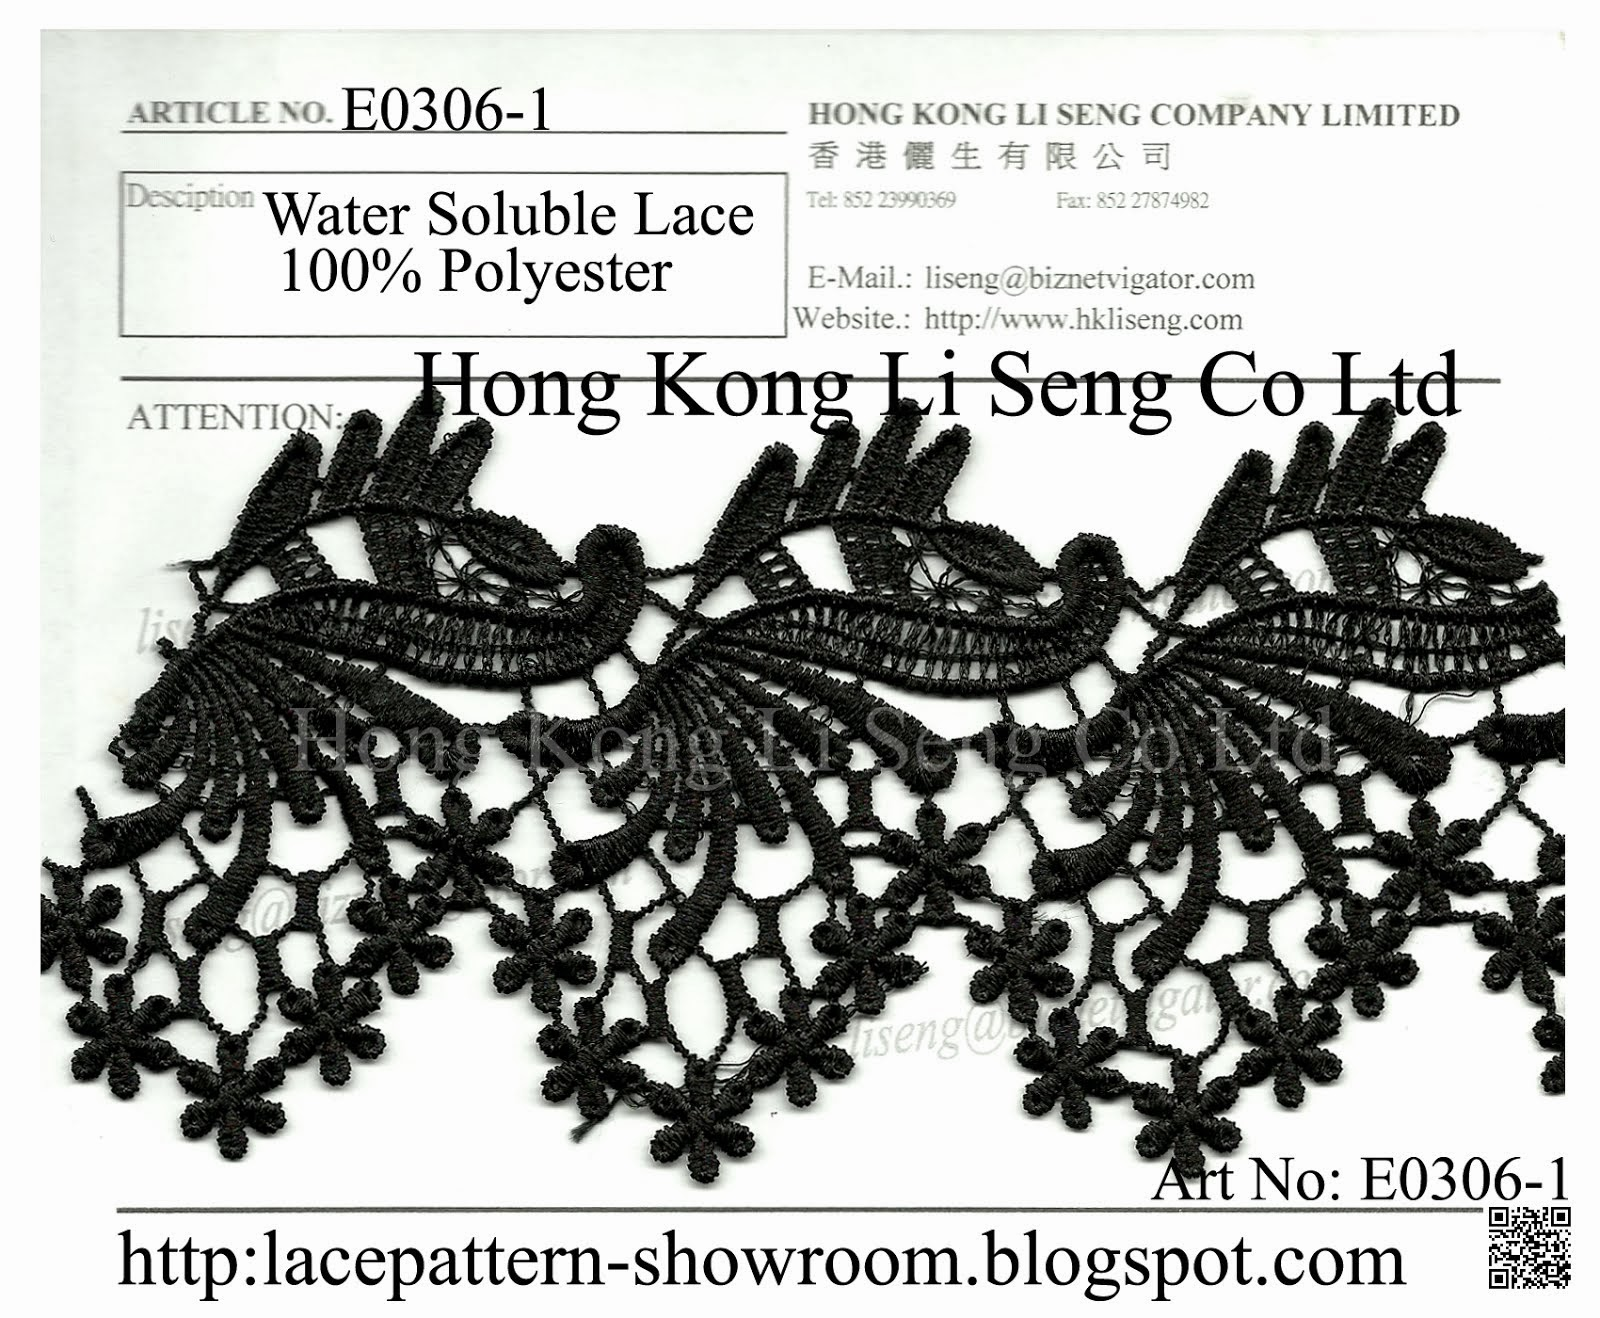 100% Polyester Chemical Embroidry Lace Water Soluble Lace - Hong Kong Li Seng Co Ltd